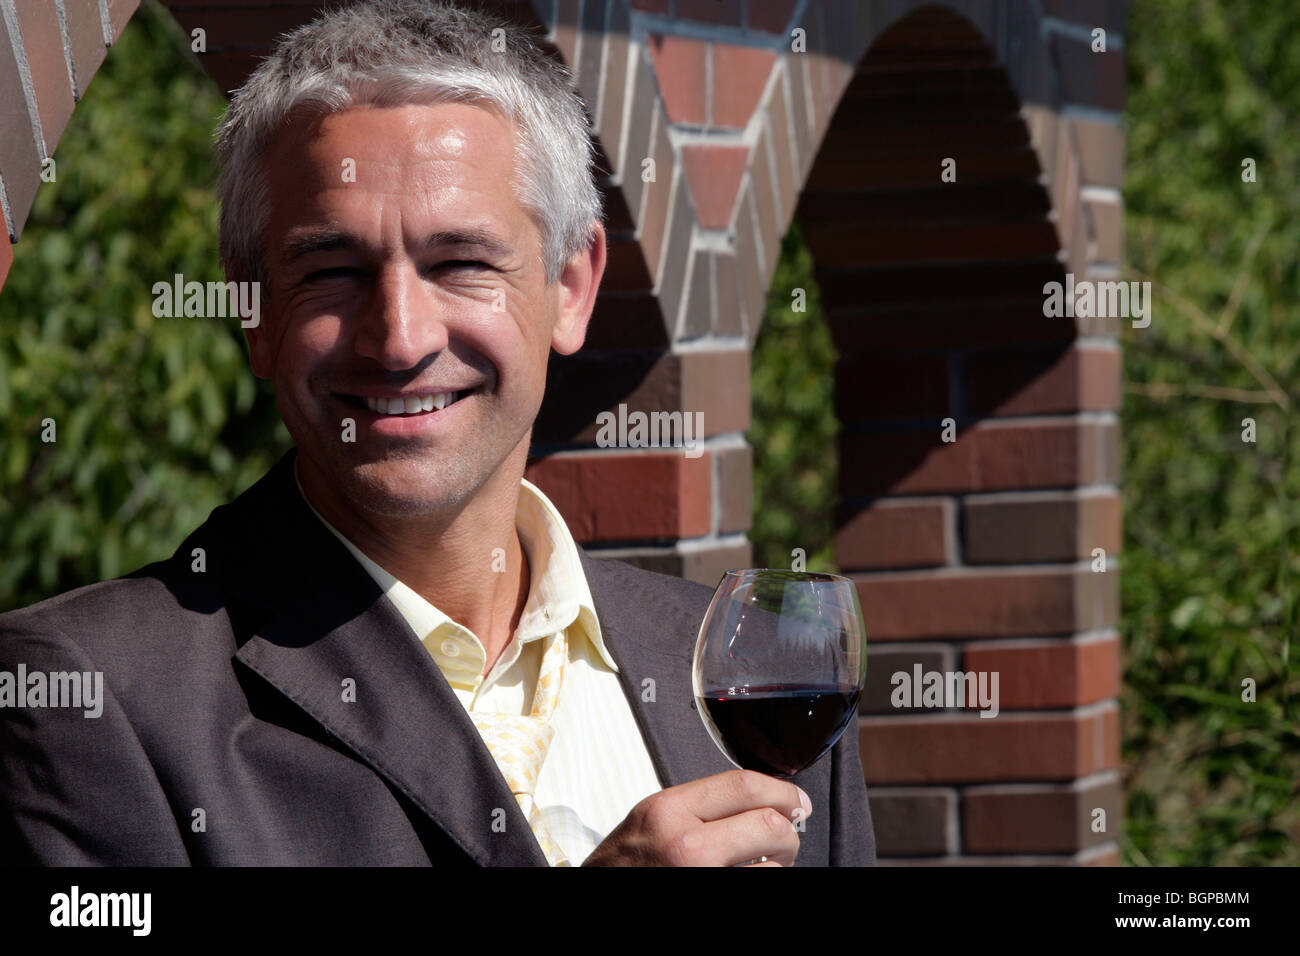 Wine maker holding glass of red wine standing before brick wall in his vineyard - Stock Image